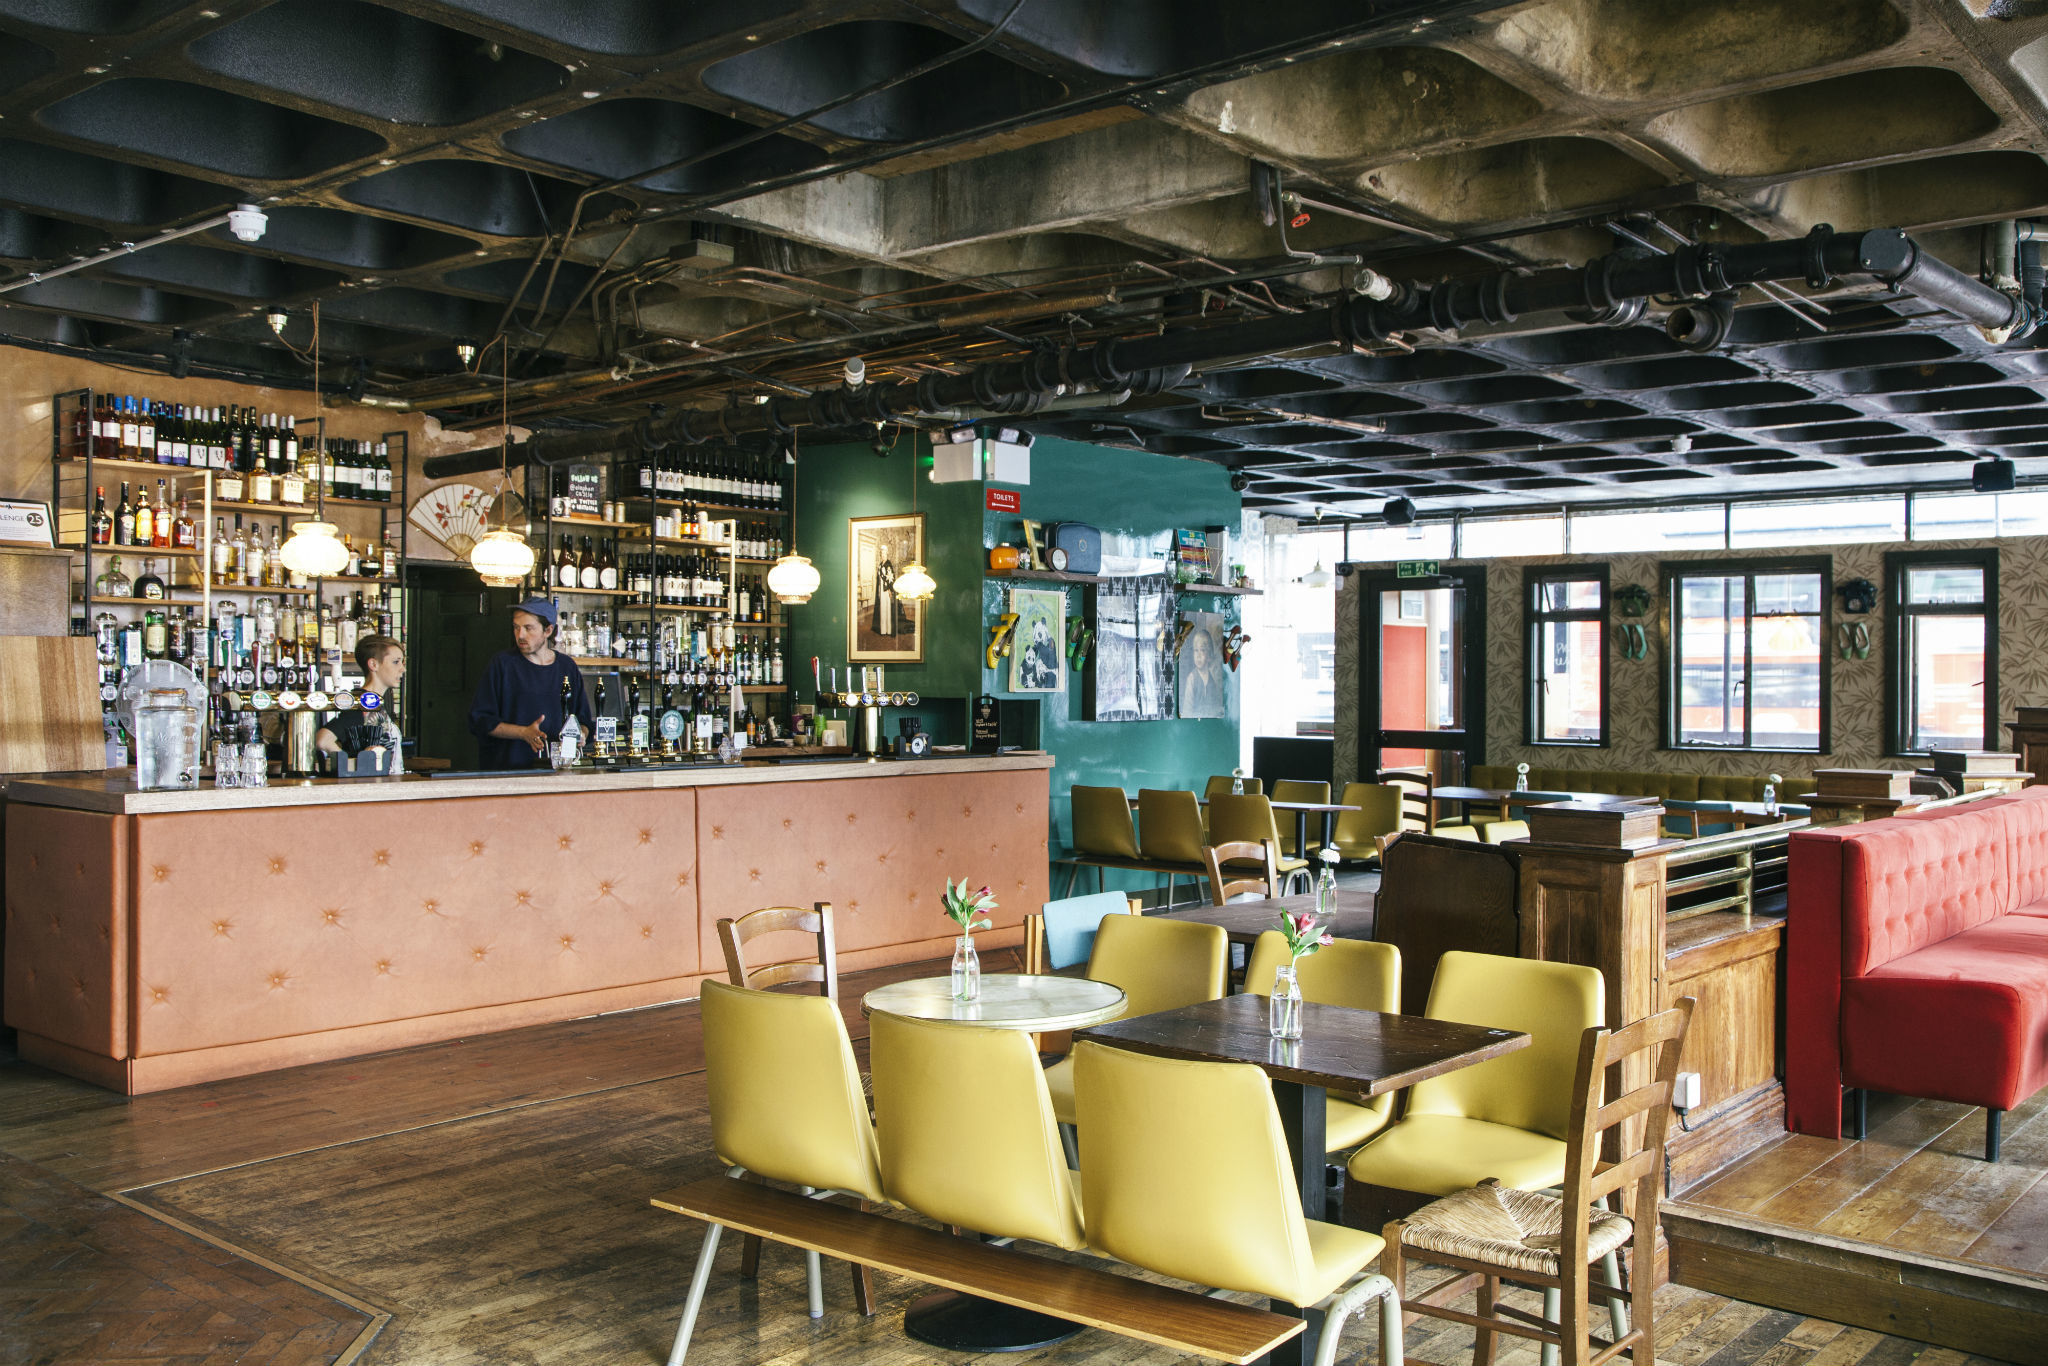 100 best bars and pubs in london, elephant & castle